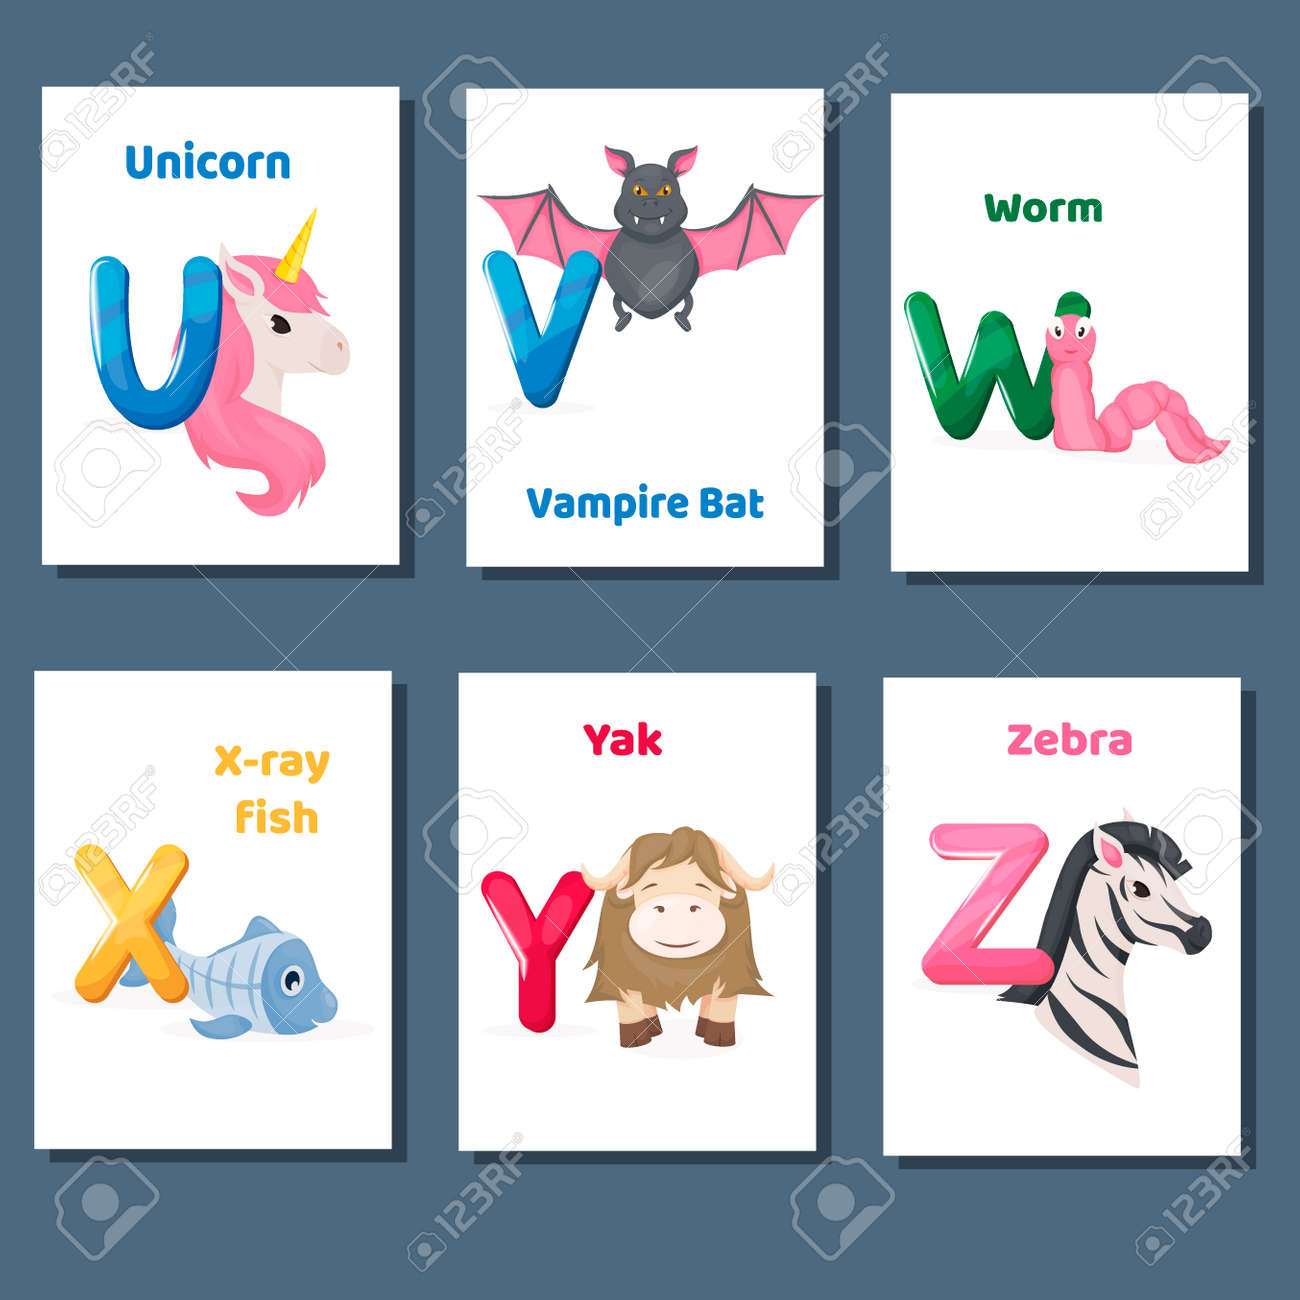 photograph relating to Letter U Printable titled Alphabet printable flashcards vector choice with letter U..